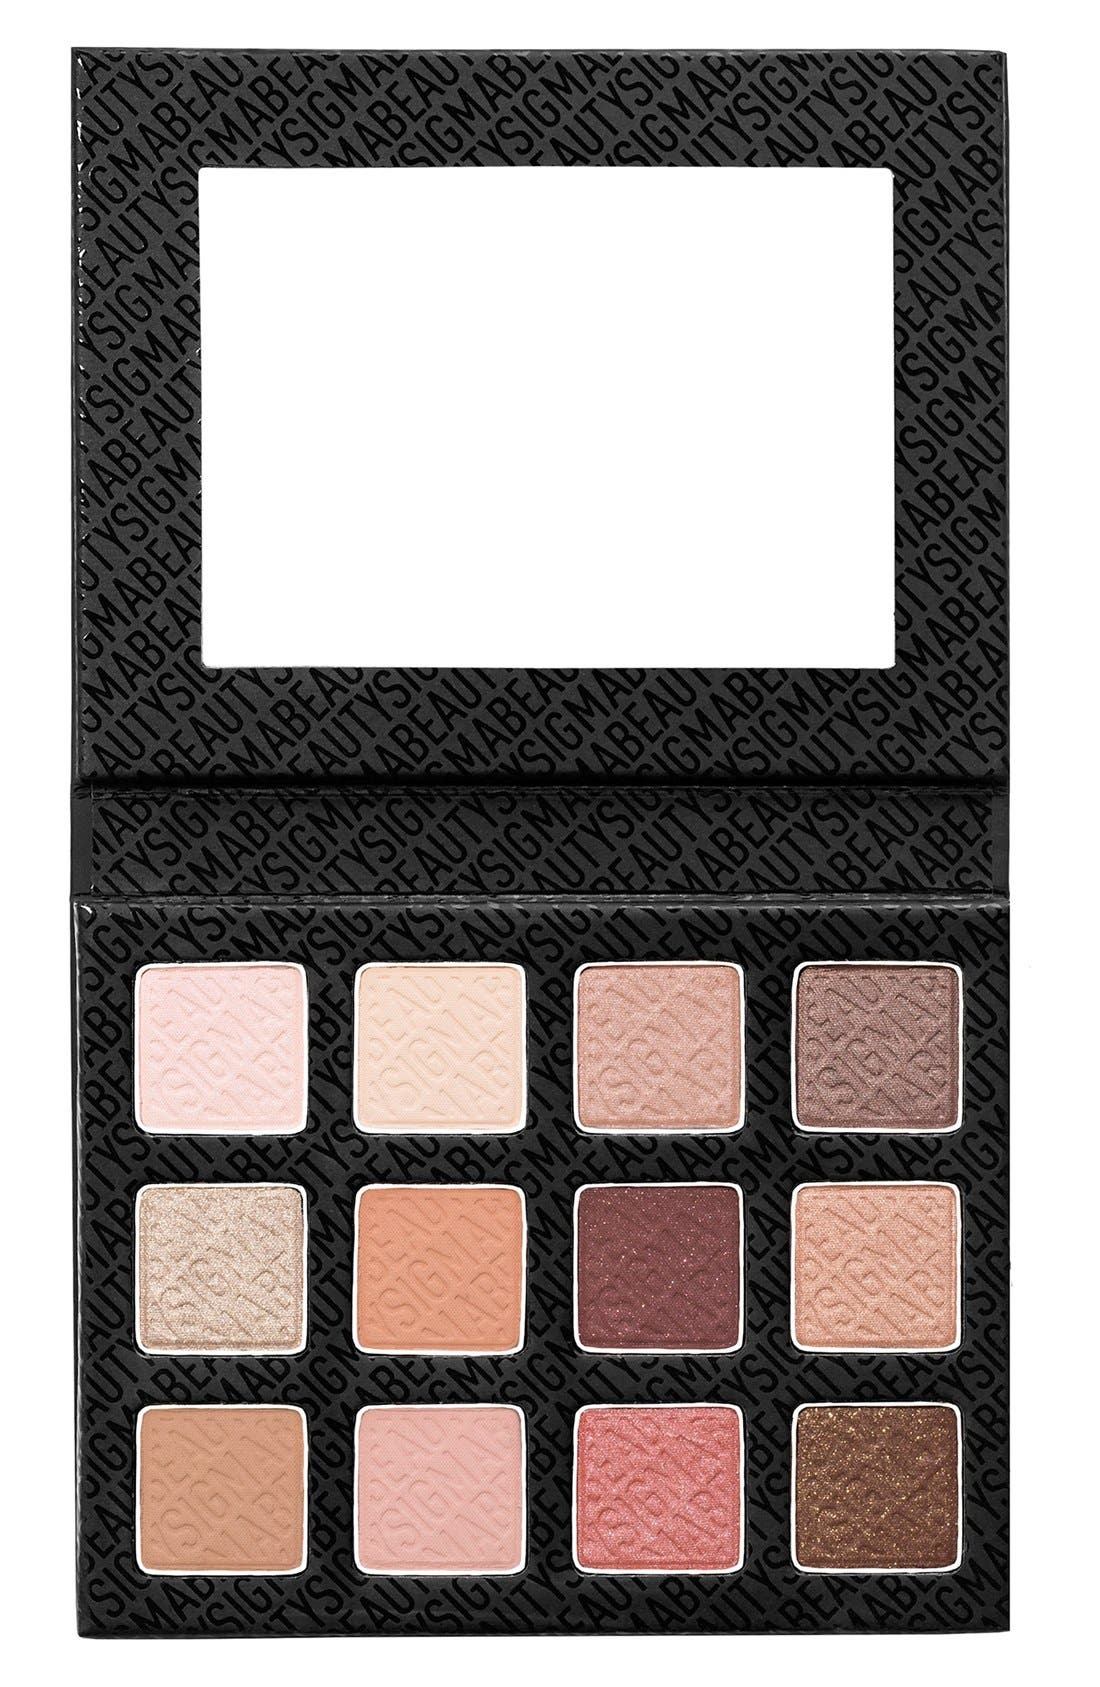 Sigma Beauty 'Warm Neutrals' Eyeshadow Palette